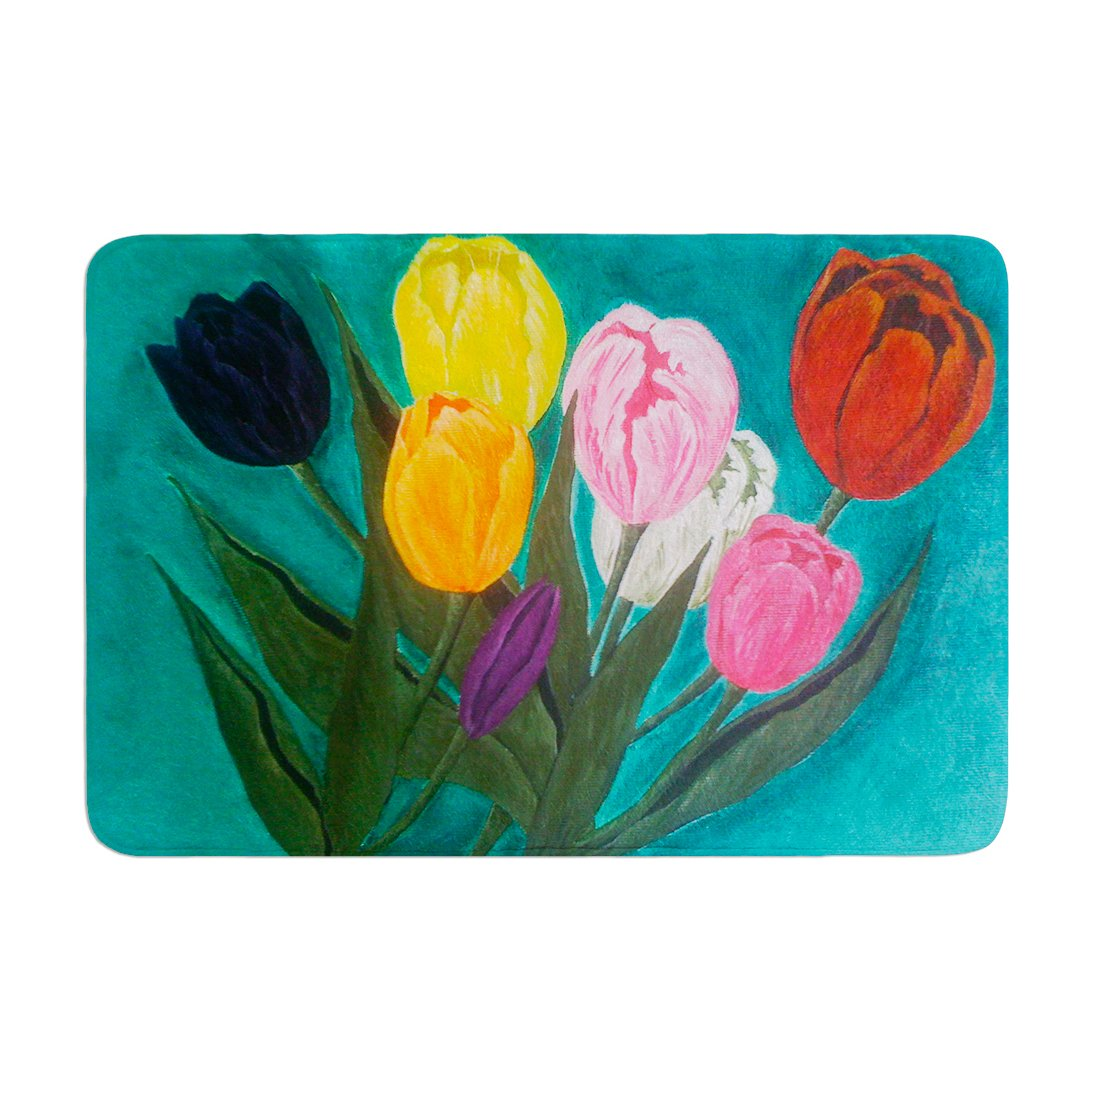 Kess InHouse Christen Treat Tulips Rainbow Flower Memory Foam Bath Mat 17 by 24